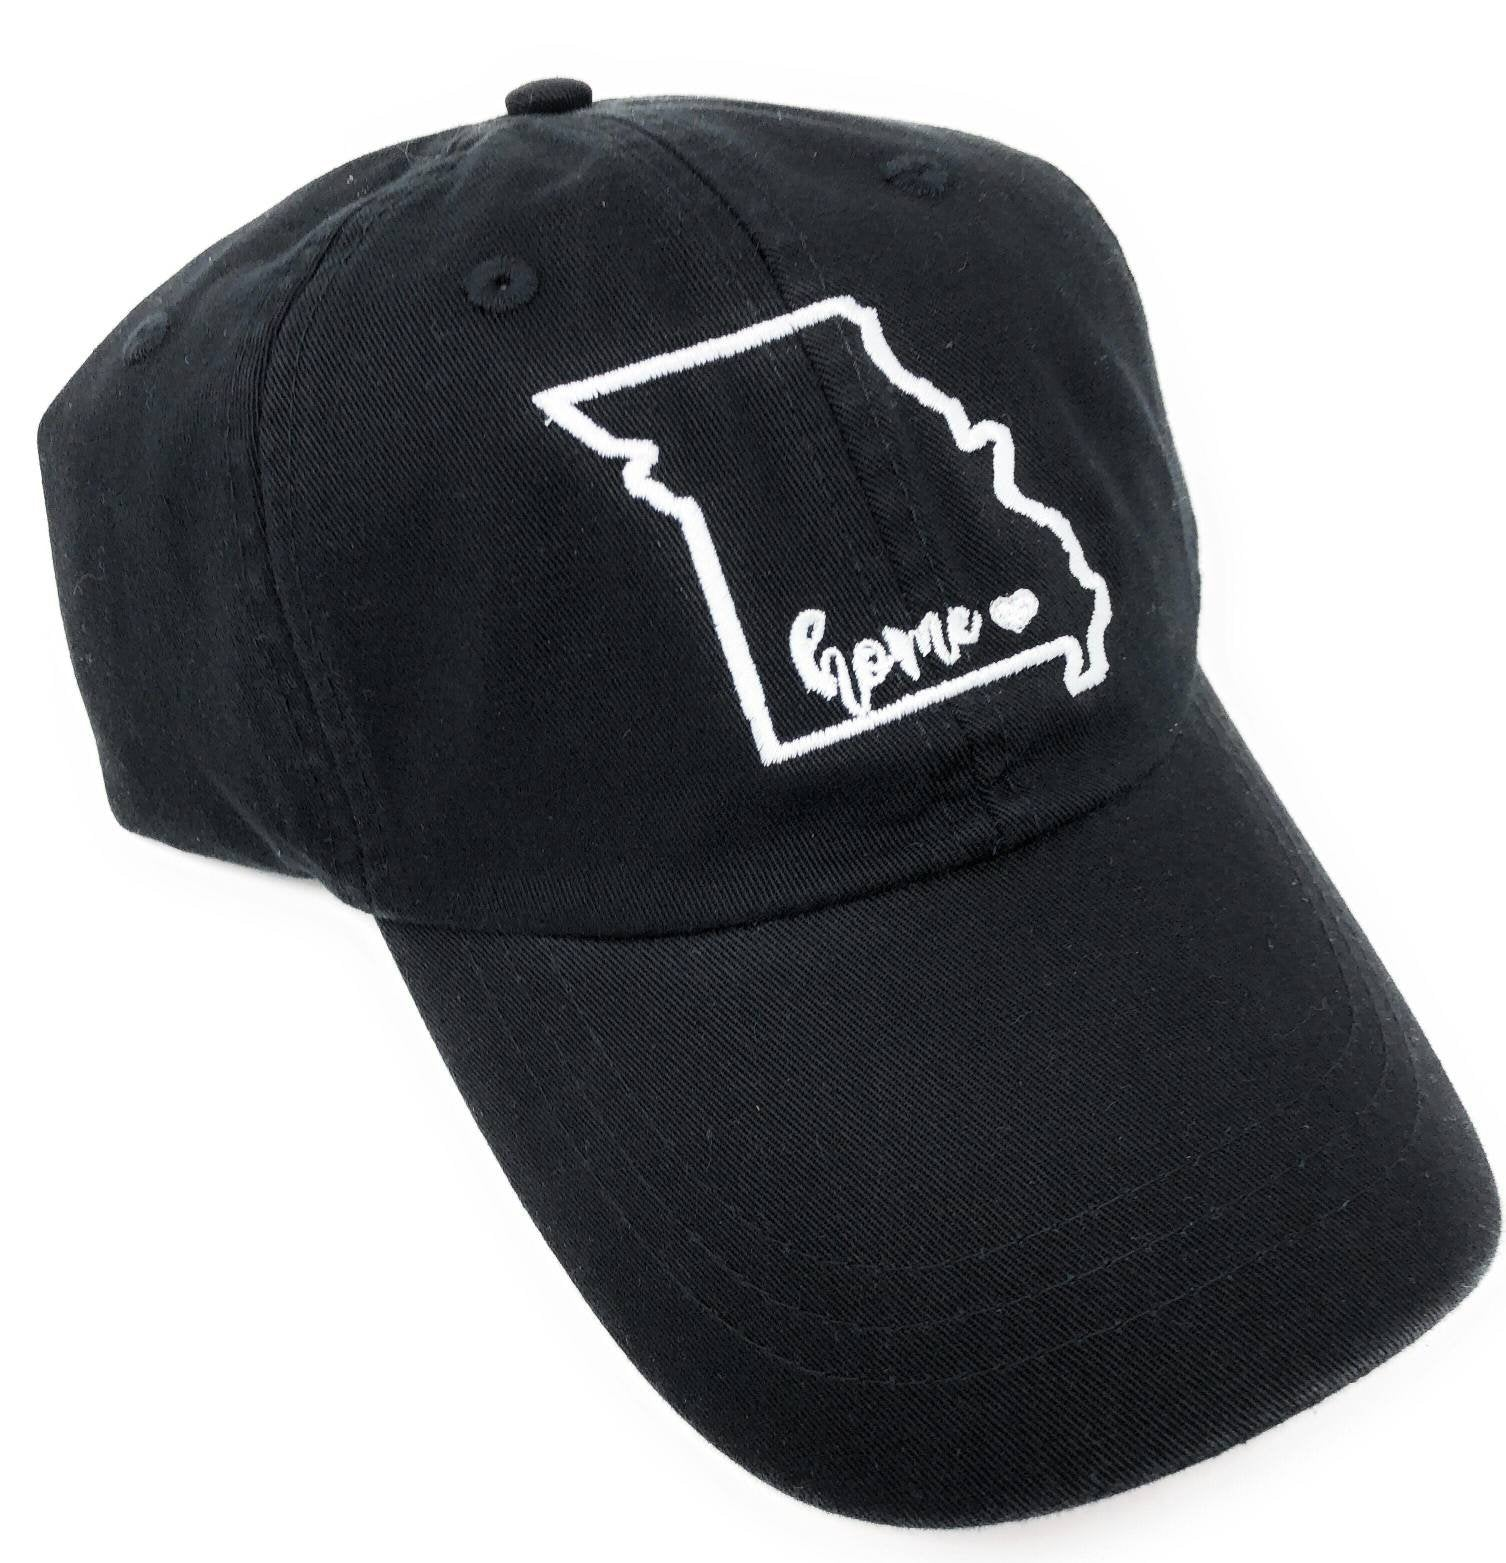 Missouri State Outline Embroidered Hat - Missouri Is Home Baseball Hat, Saint Louis, MO, STL, The Lou, Gateway City, St. Louis City Pride